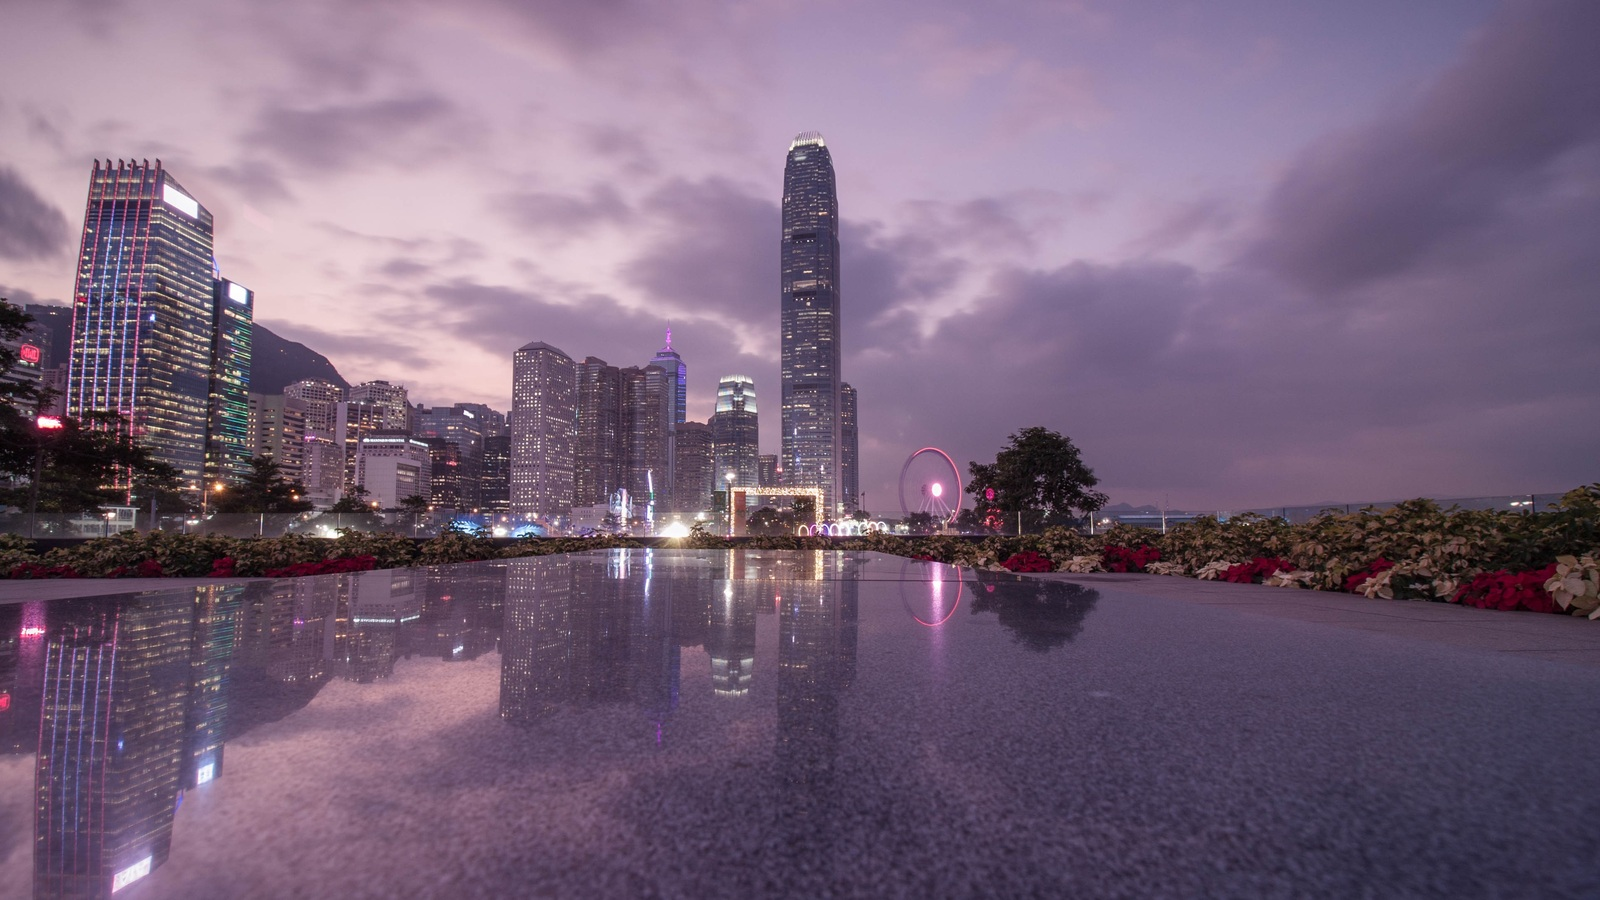 city-hong-kong-cityscape-urban-metropolis-building-4k-cd.jpg